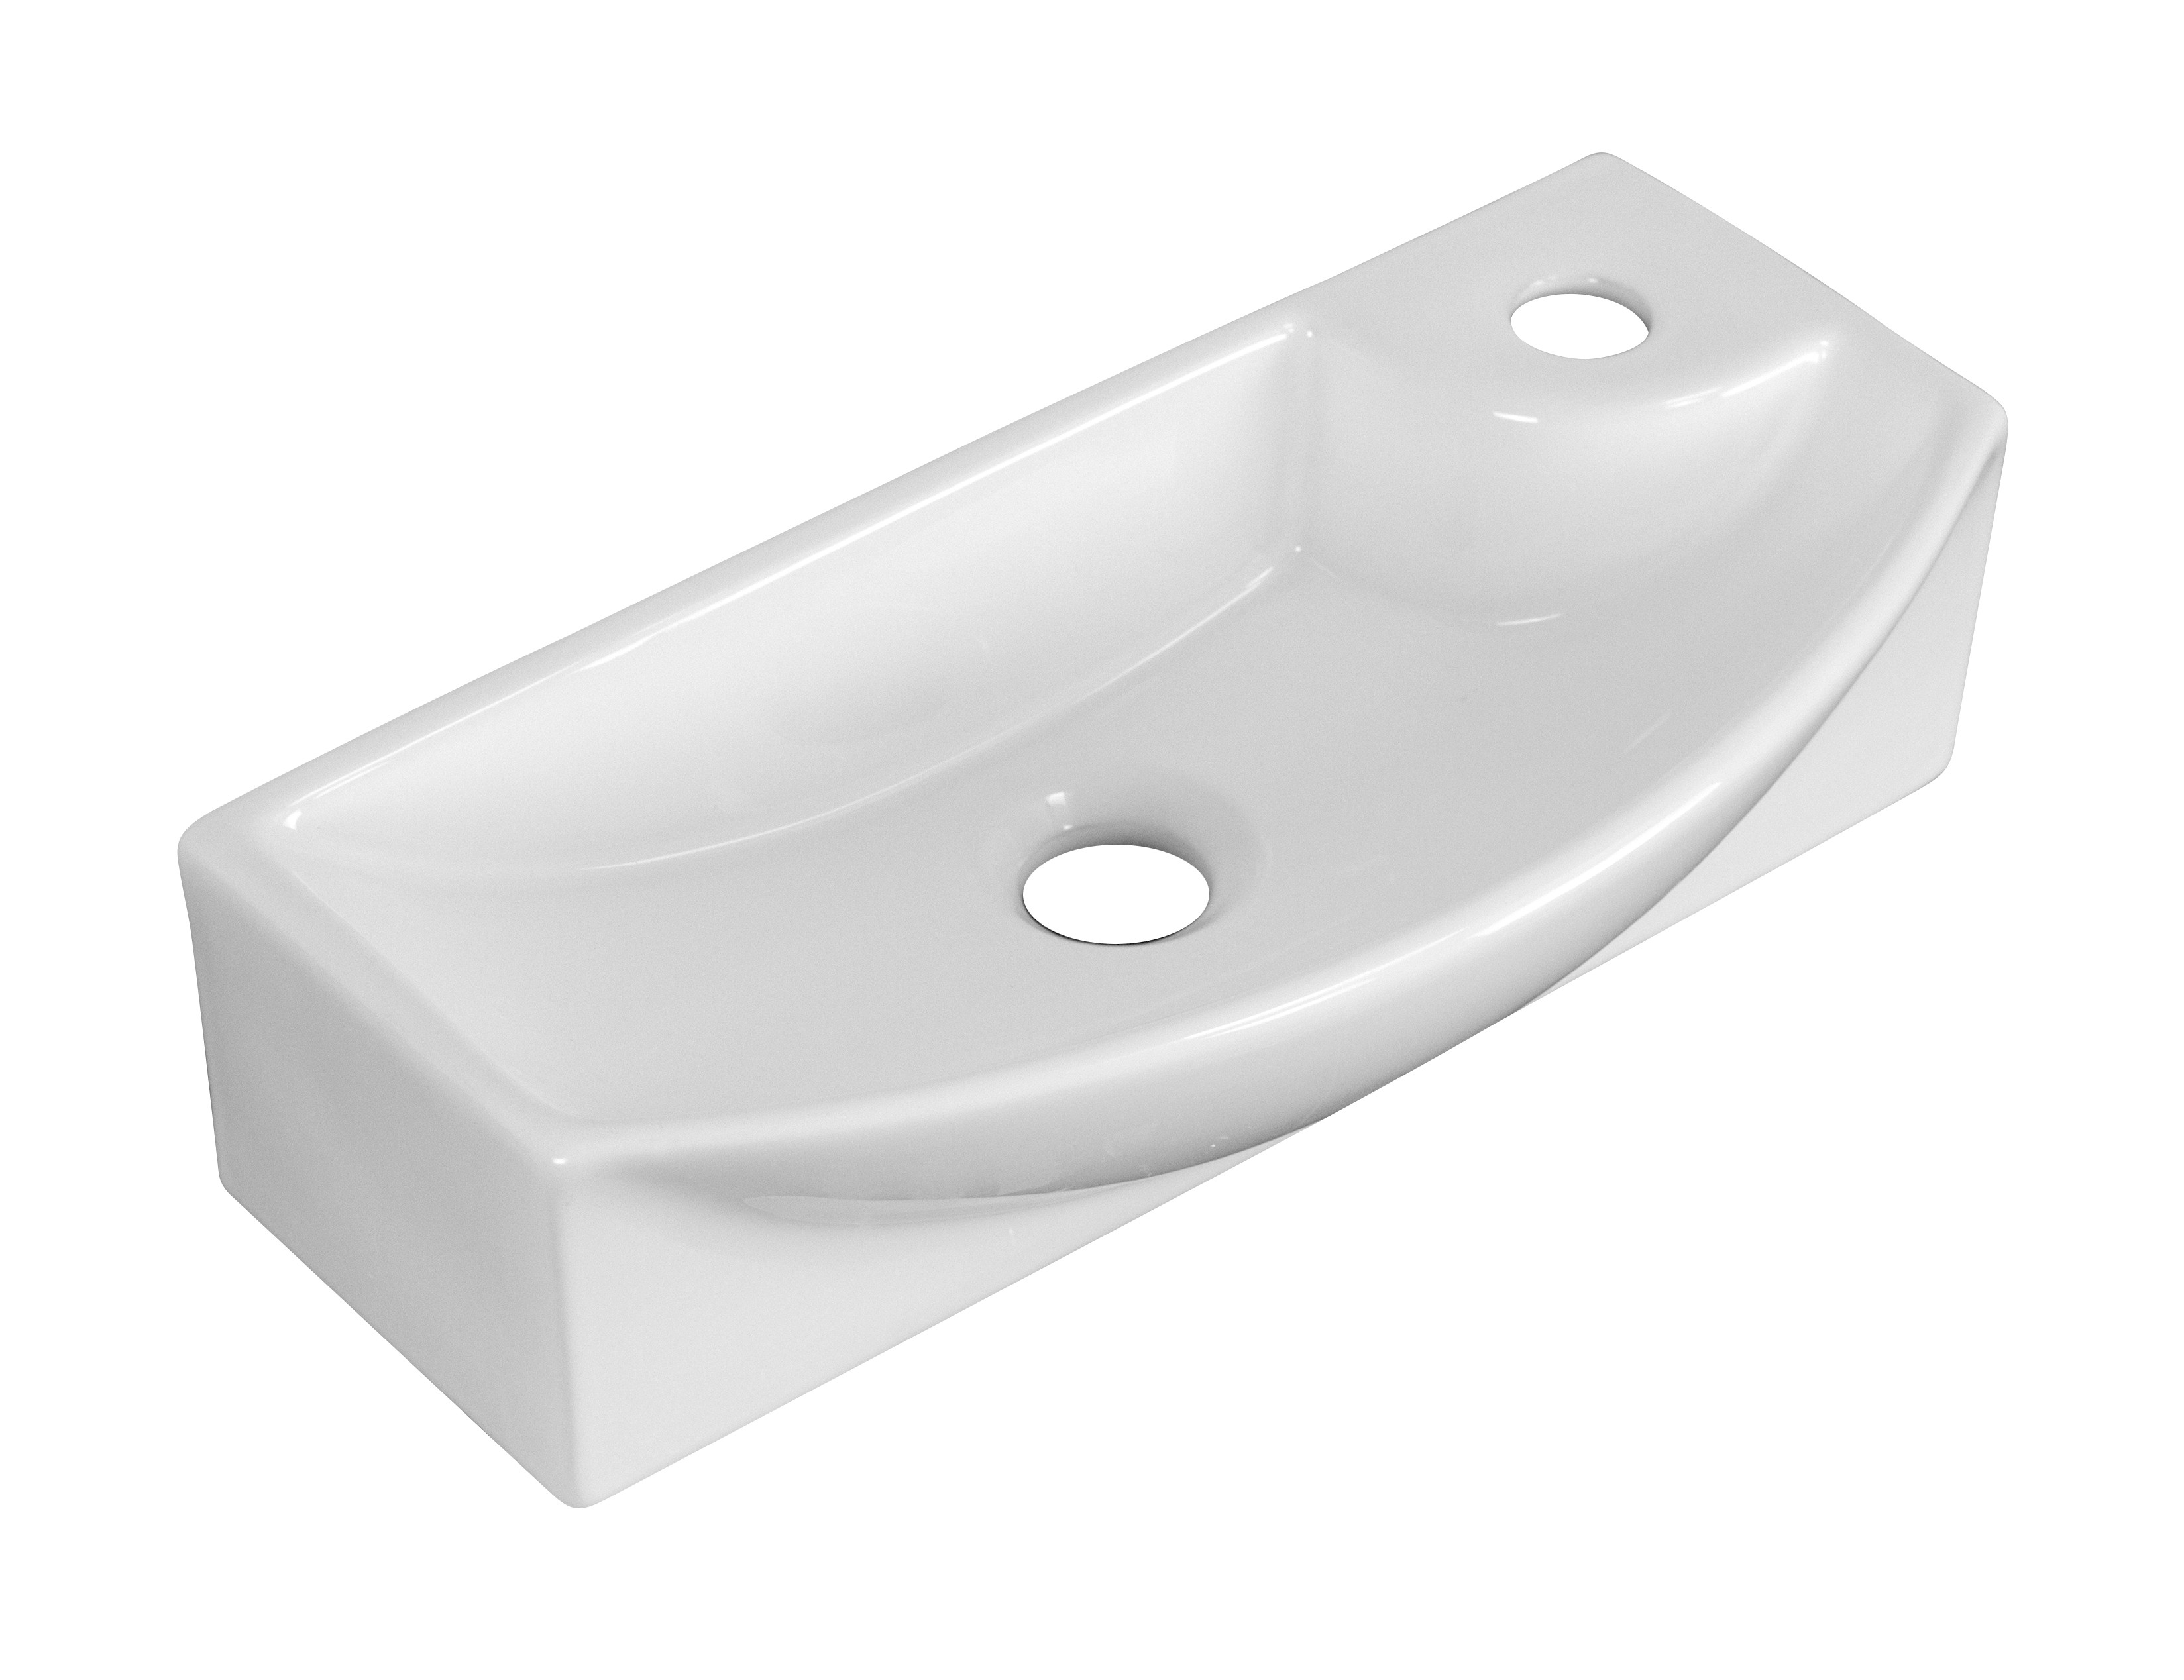 American Imagination AI-1757 Wall Mount Rectangle Vessel In White For Single Hole Faucet